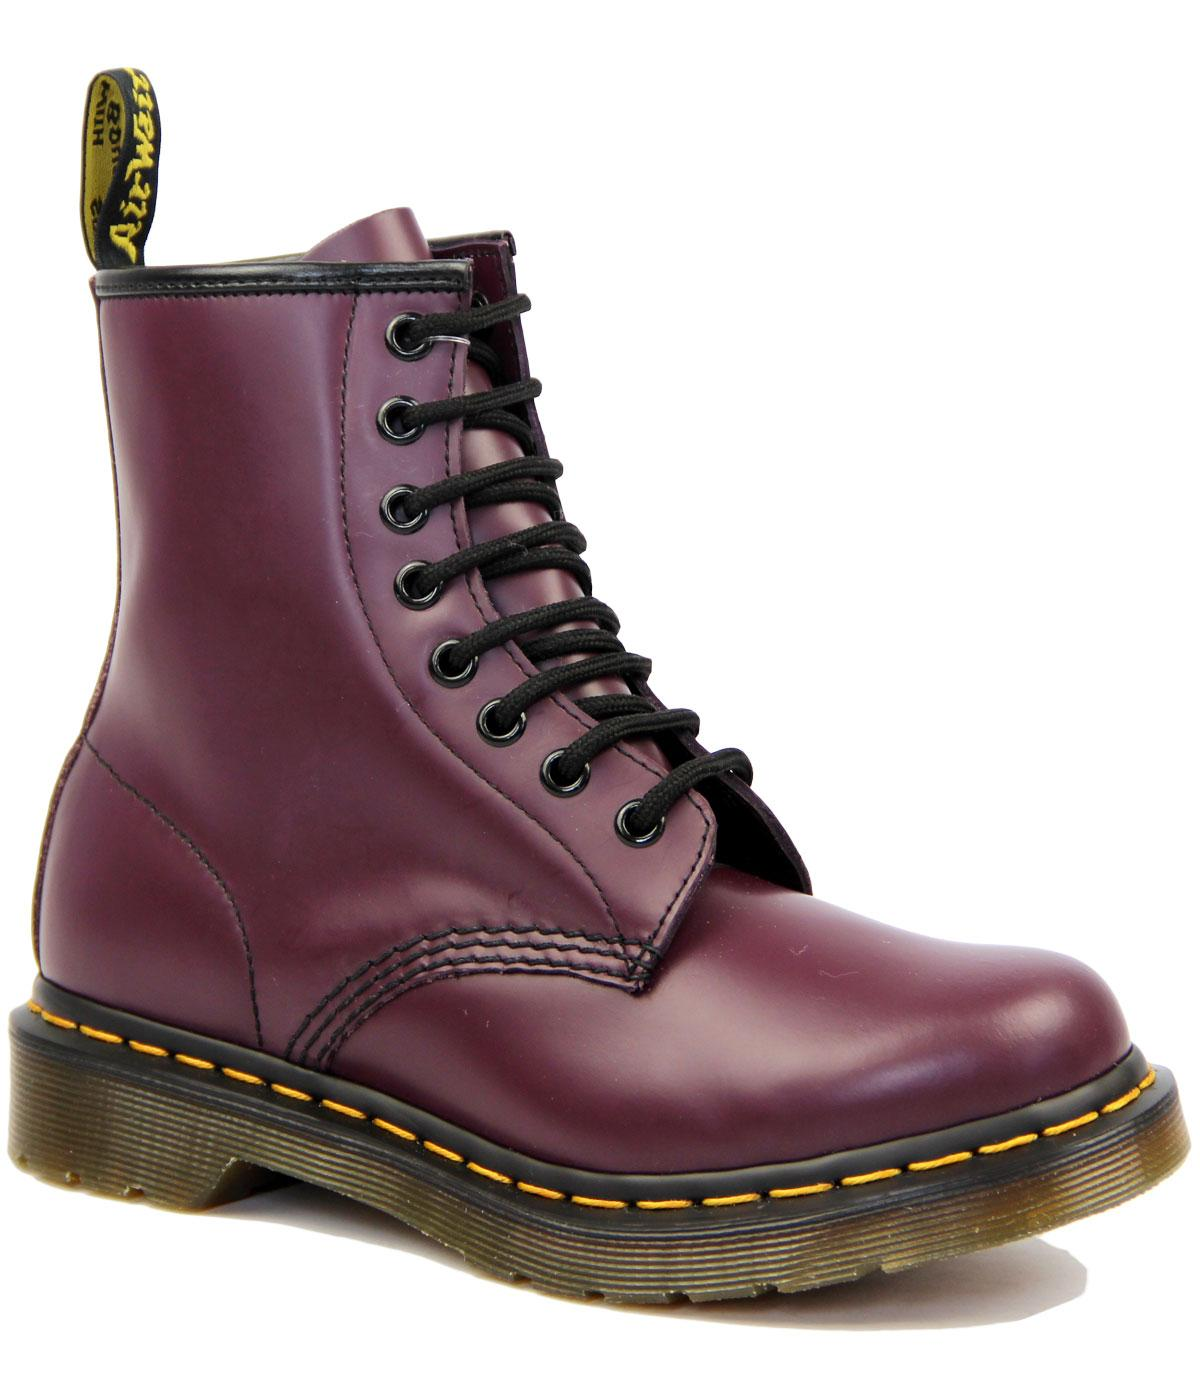 1460 W DR MARTENS Retro 60's Smooth Purple Boots